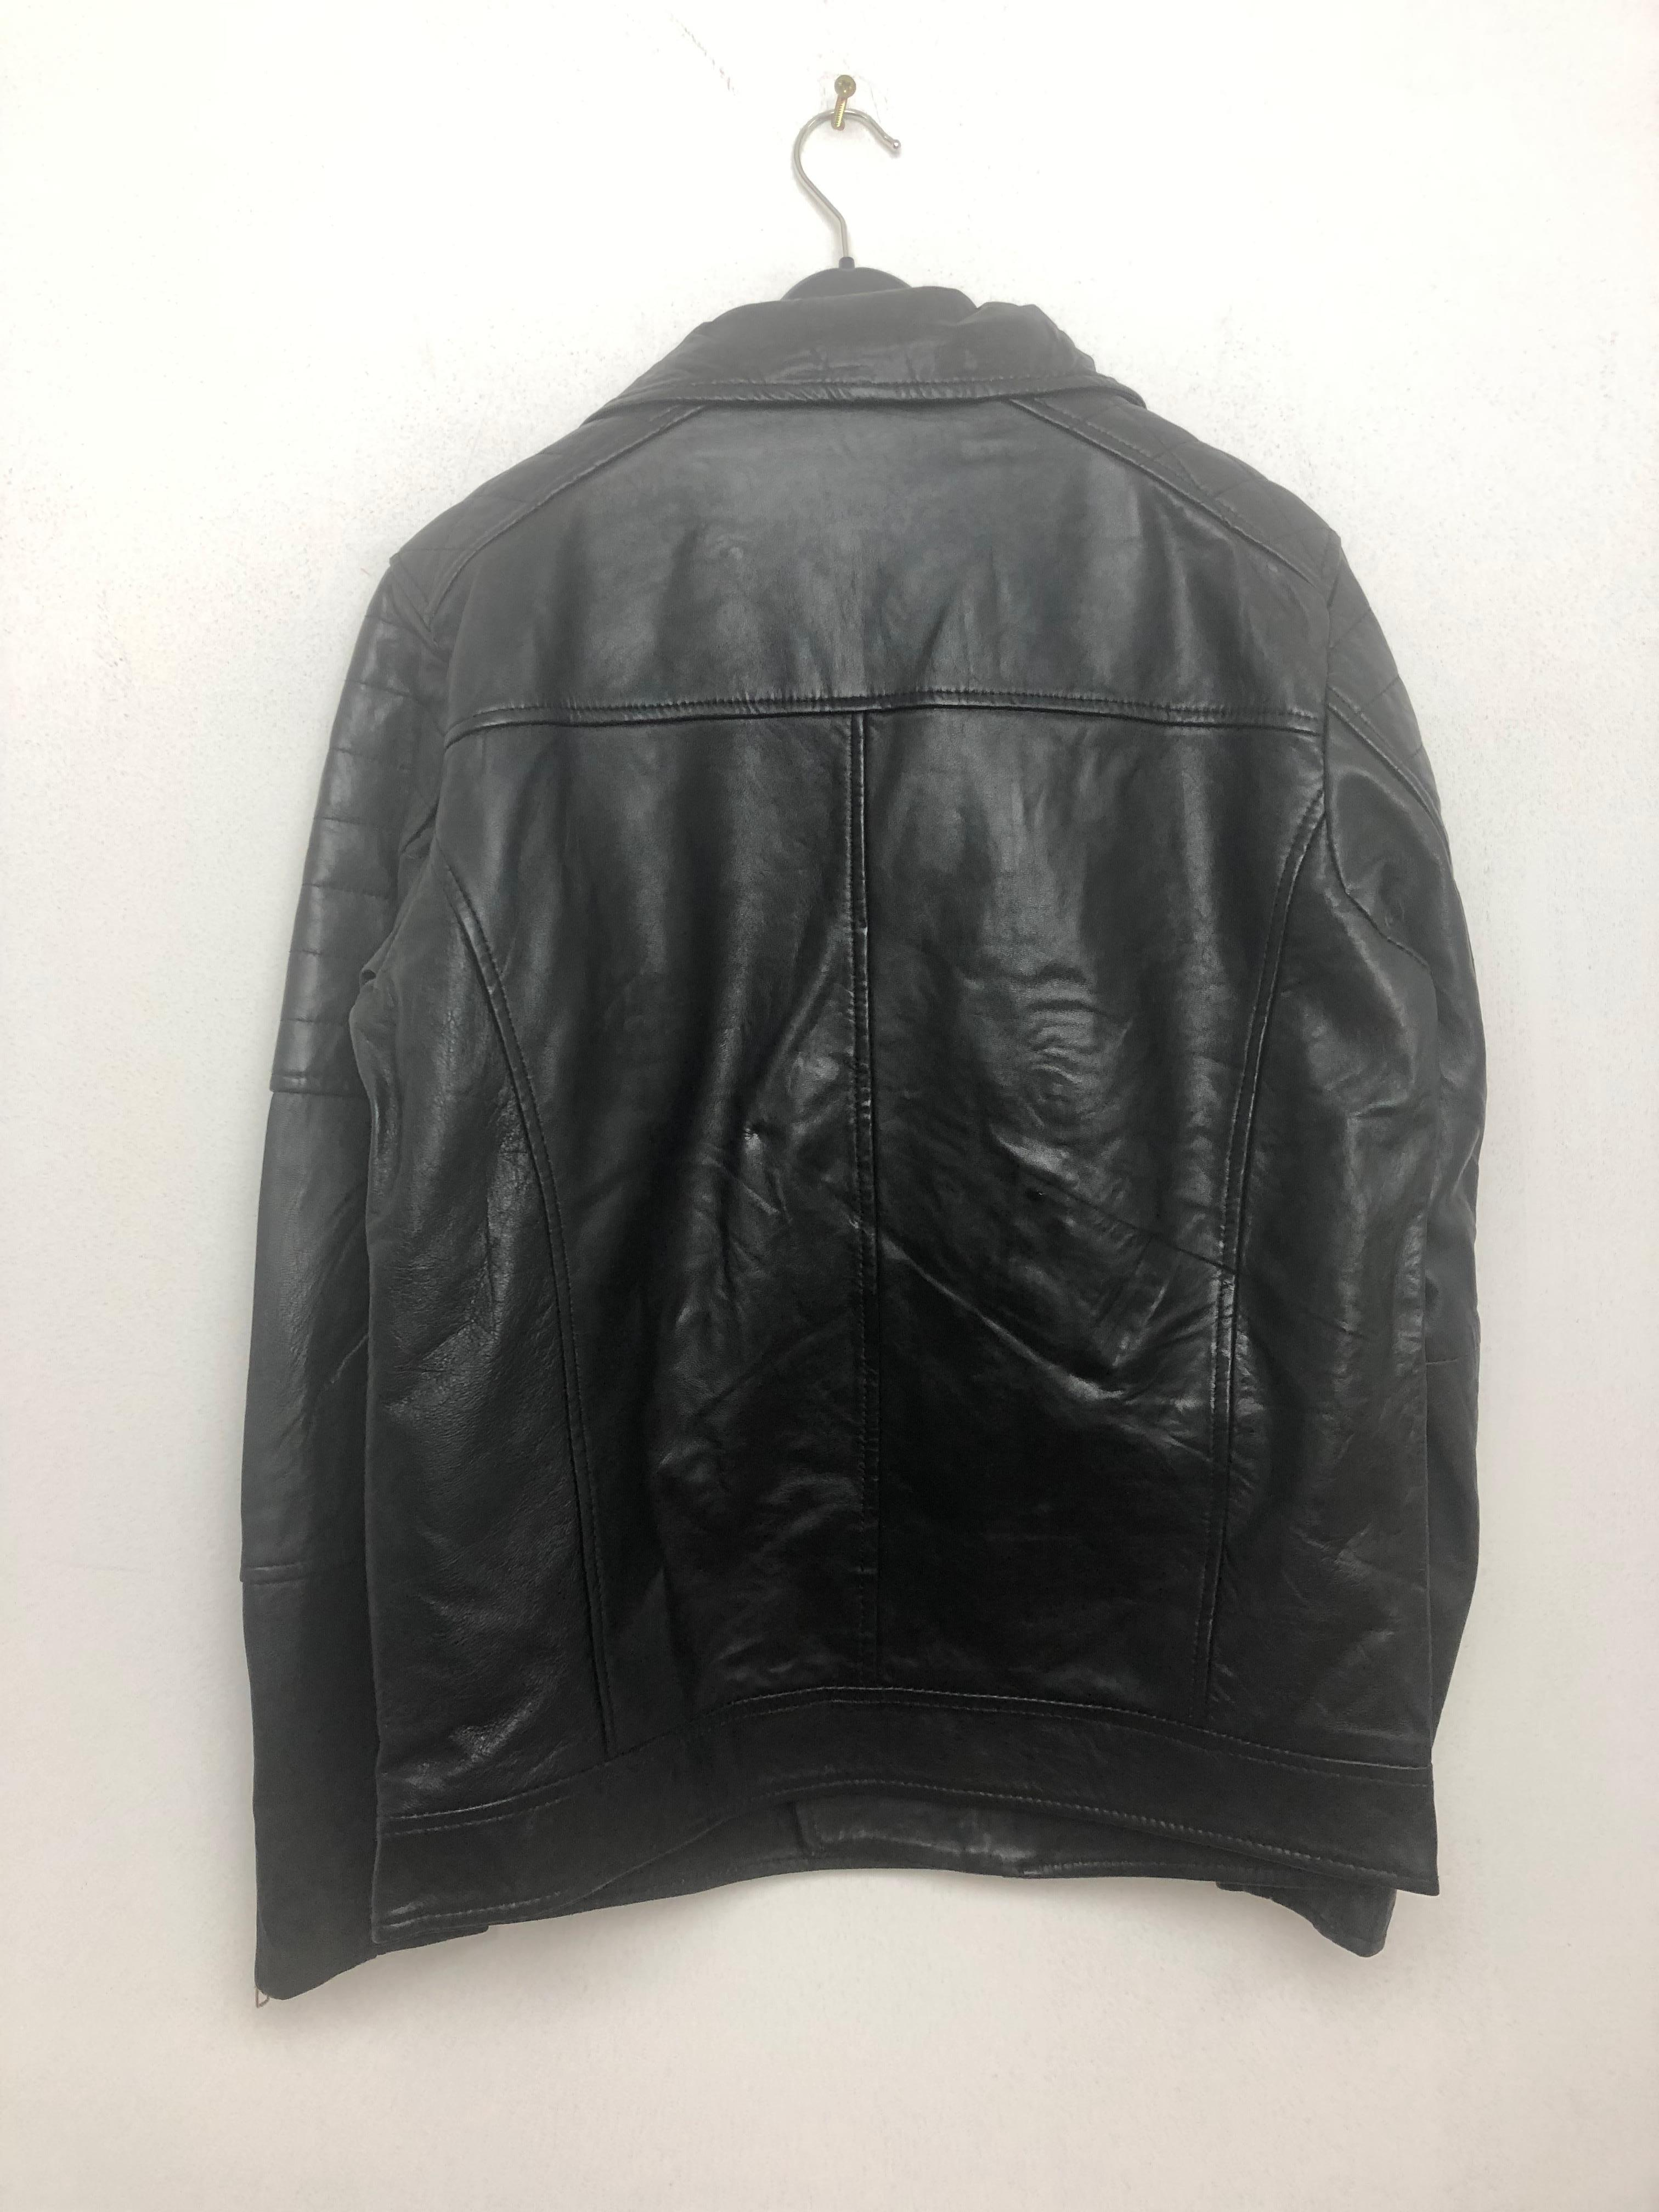 Approx. 200 x Black Leather Jacket - Image 2 of 4